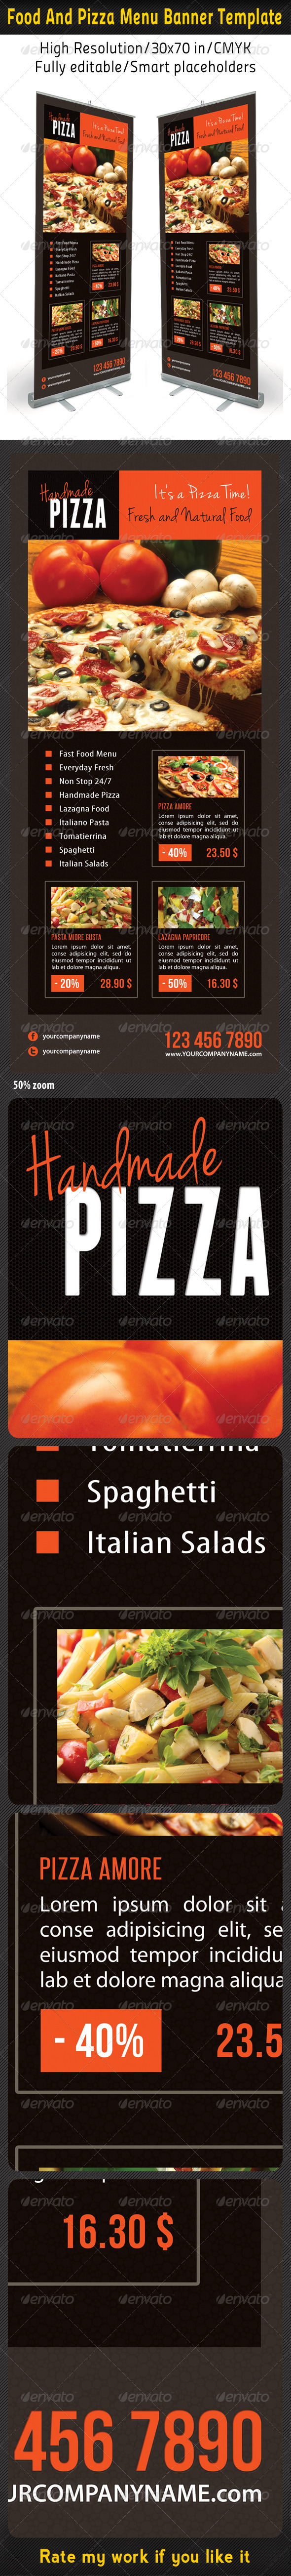 Food And Pizza Menu Banner Template 07 - Signage Print Templates